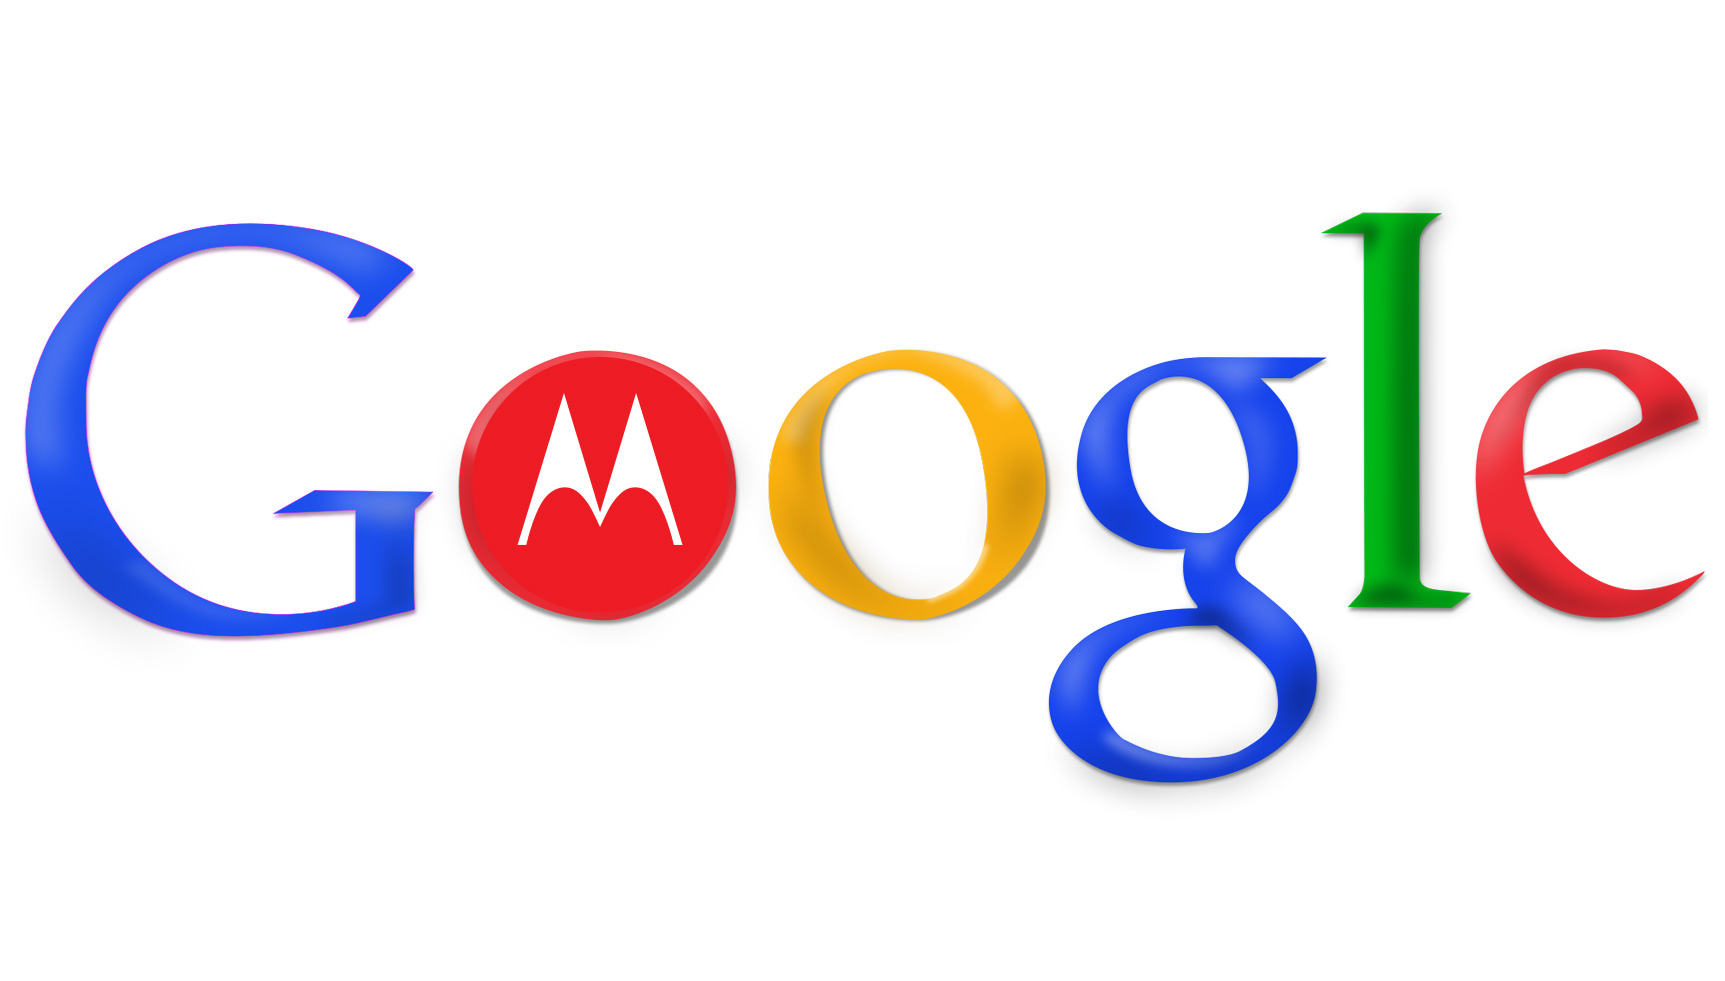 Google acquires Motorola Mobility; Price $12.5 billion